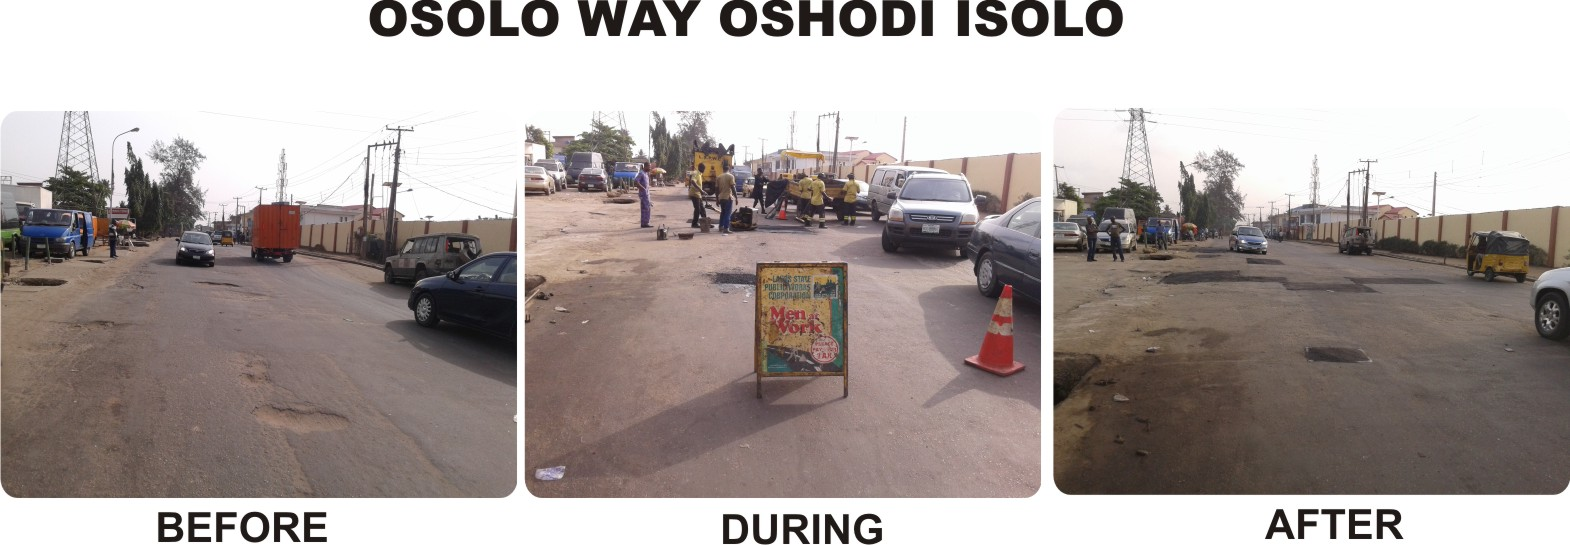 OSOLO WAY OSHODI ISOLO